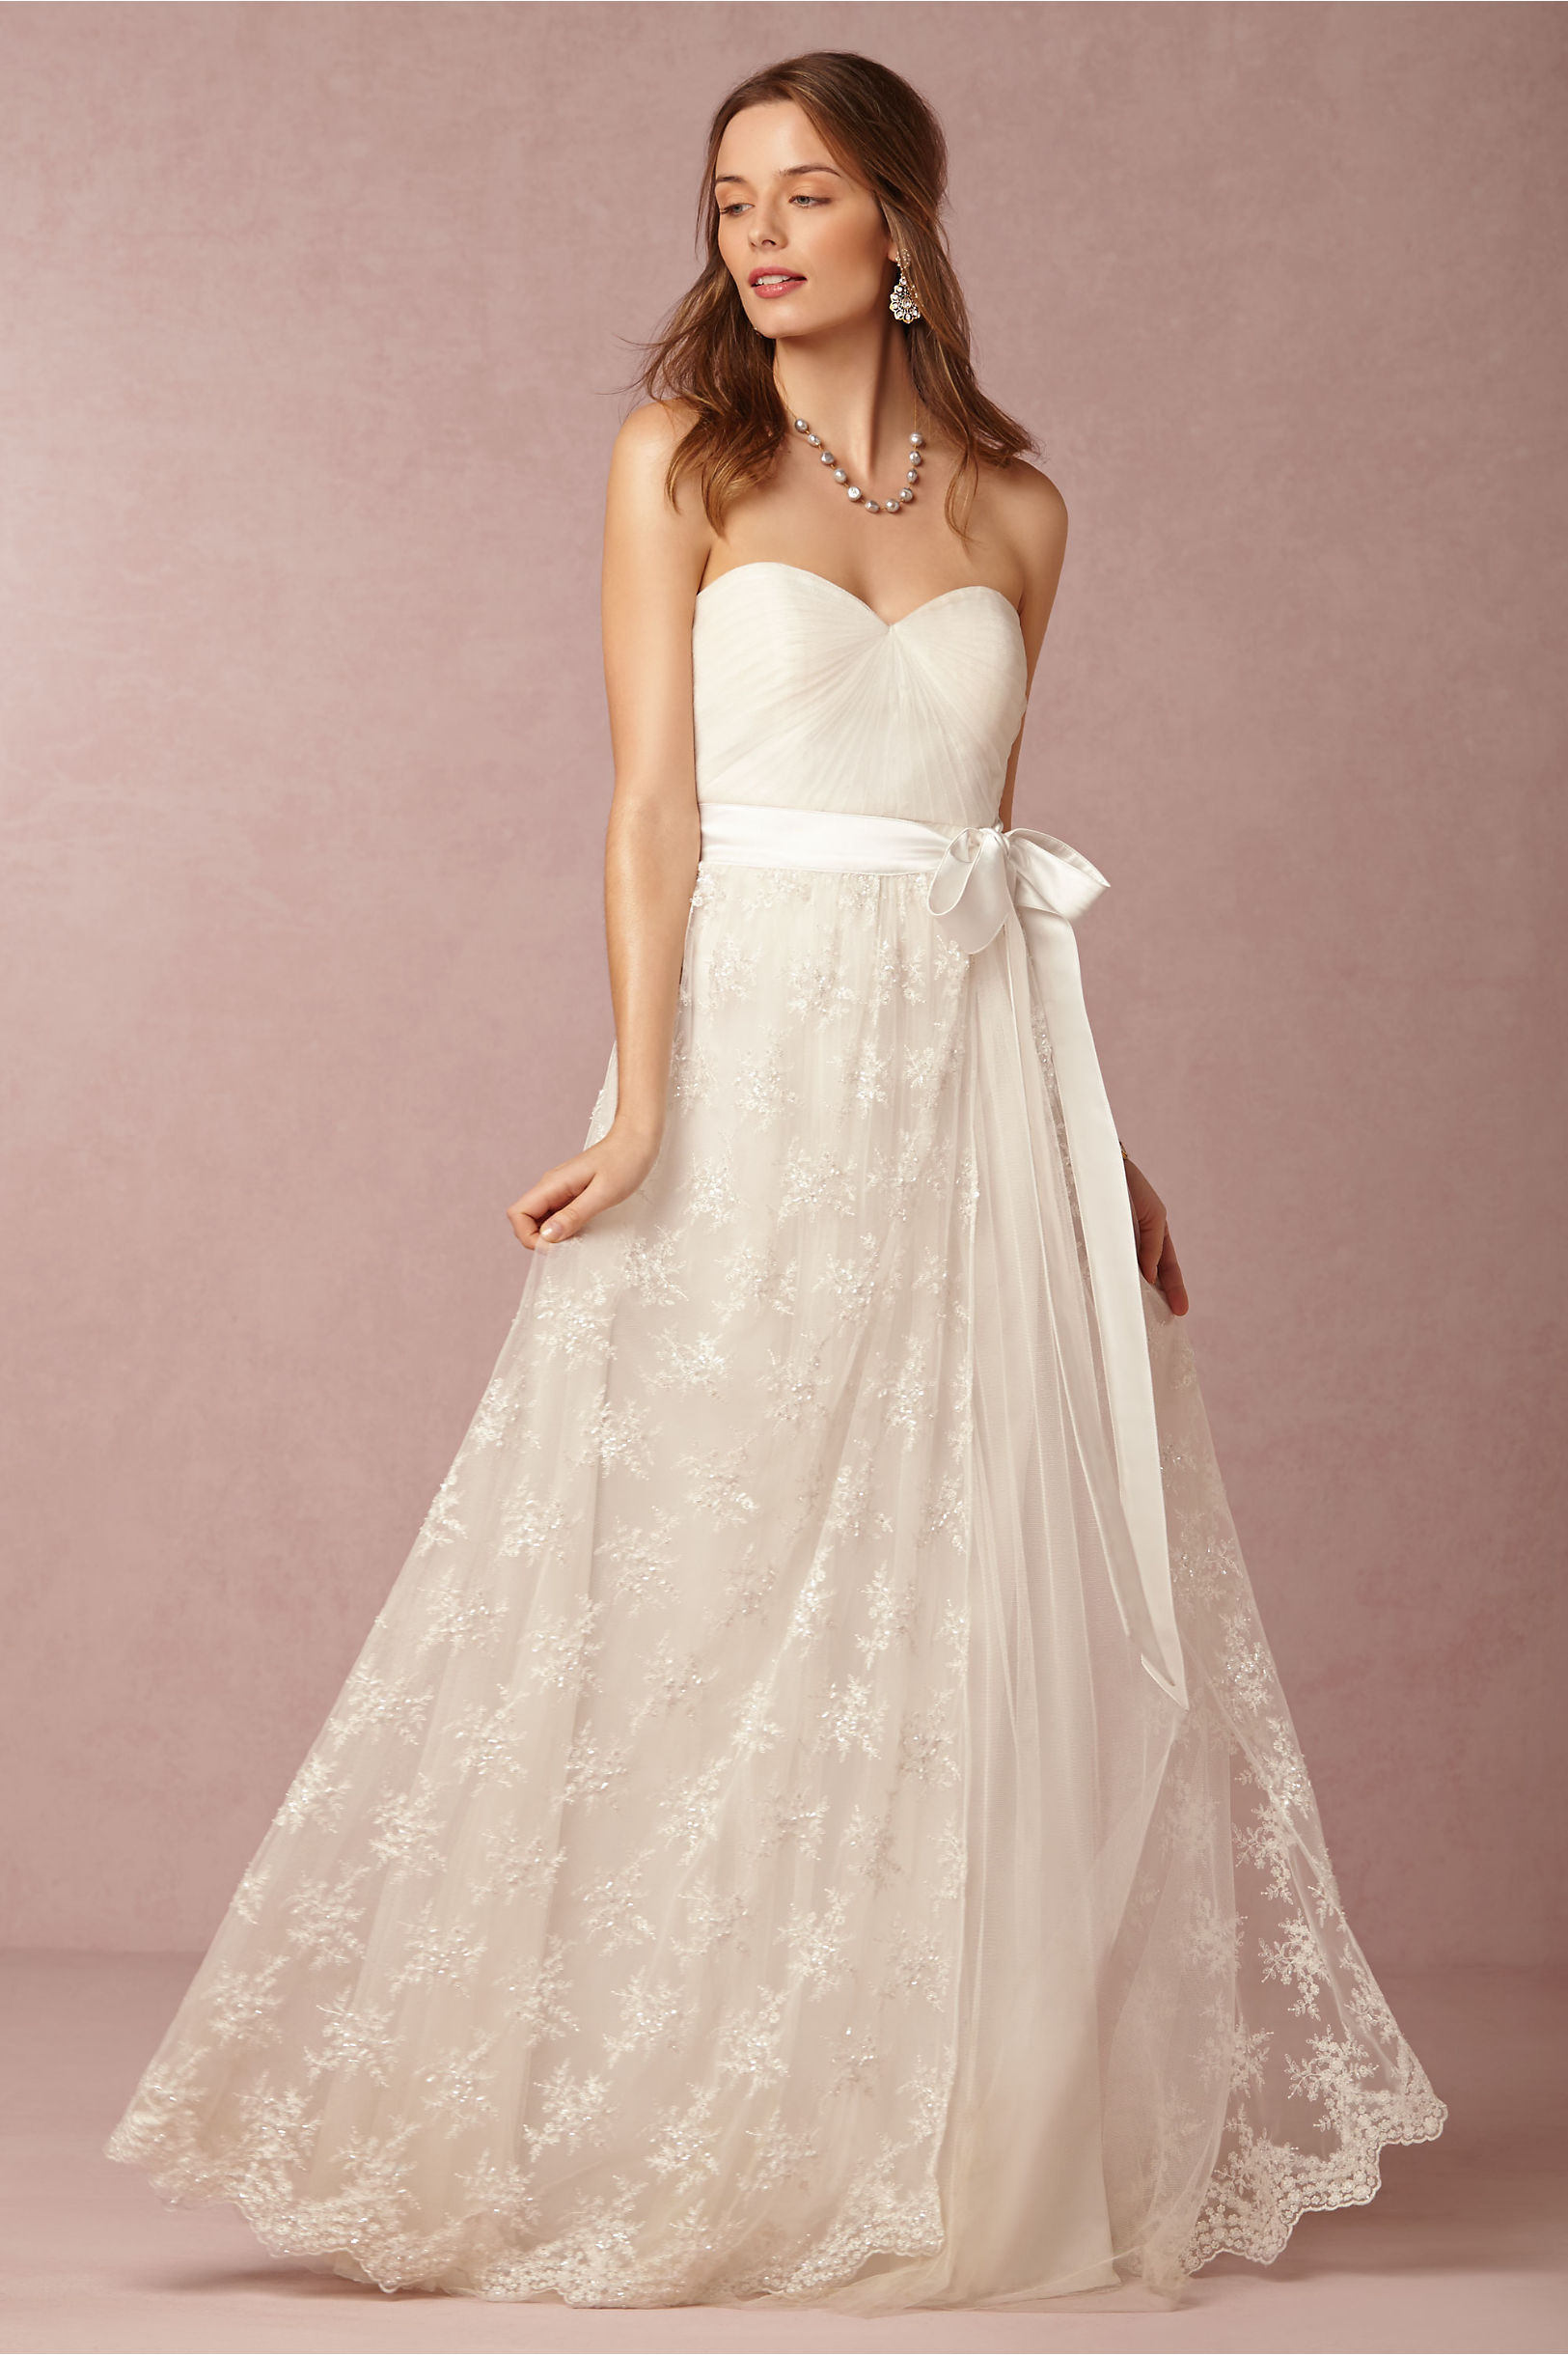 Julia Skirt & Annabelle Dress in Bride | BHLDN